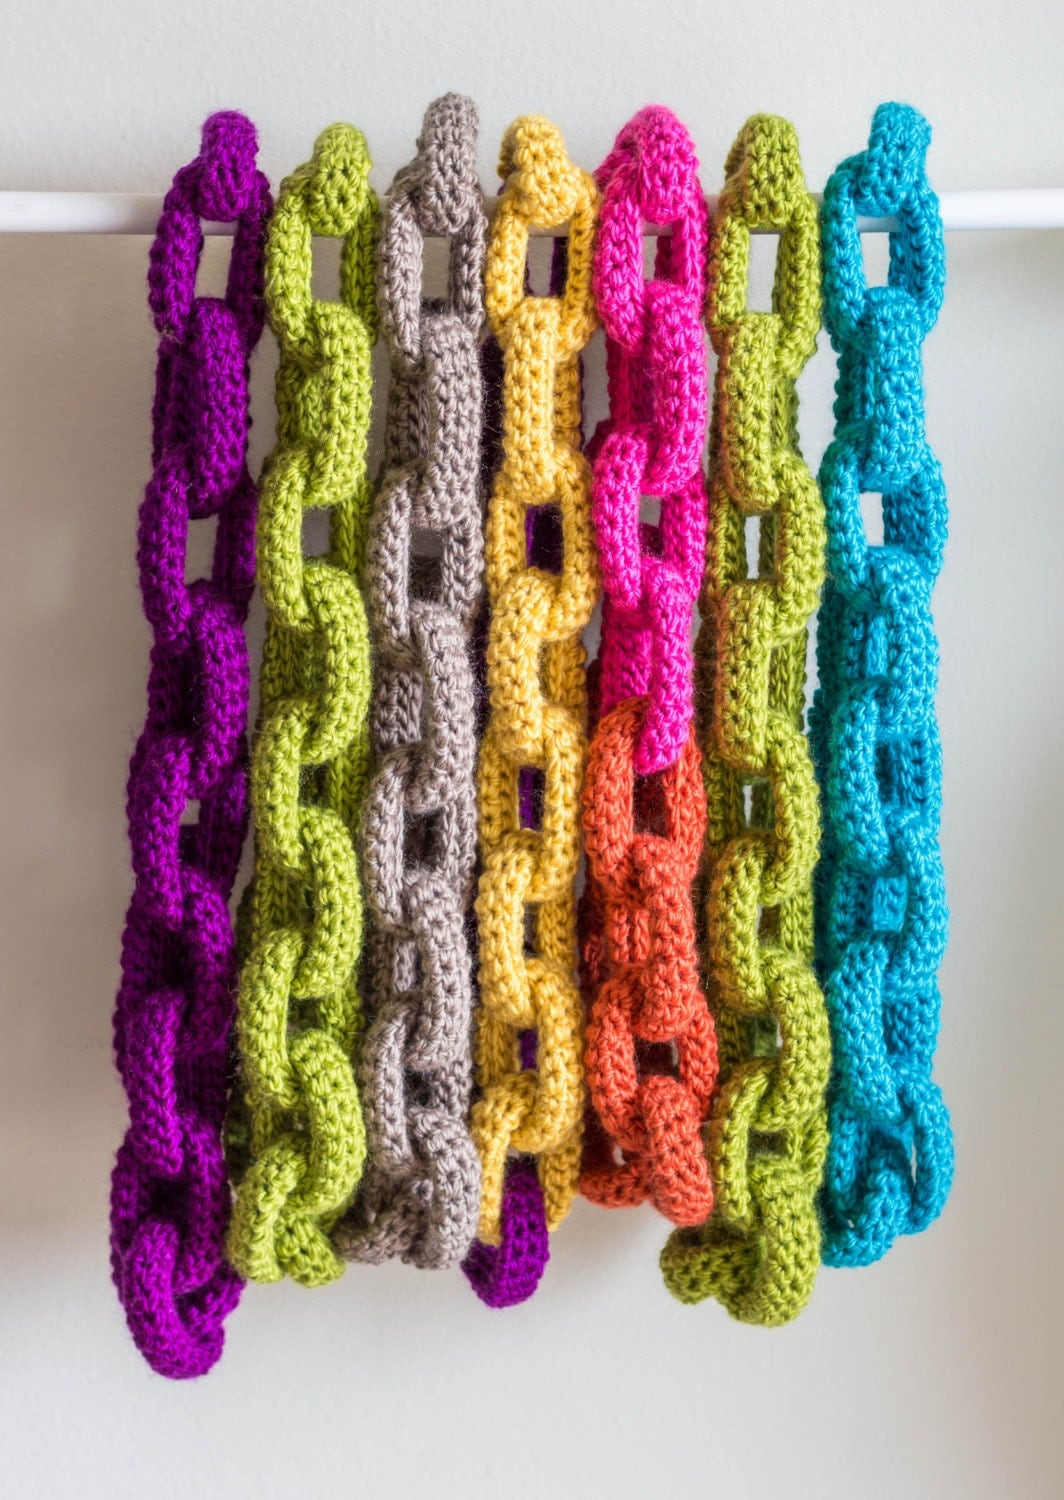 Crochet Stitches Jewelry : Chain Link Scarf Crochet Pattern Crochet Scarf by KnitsForLife